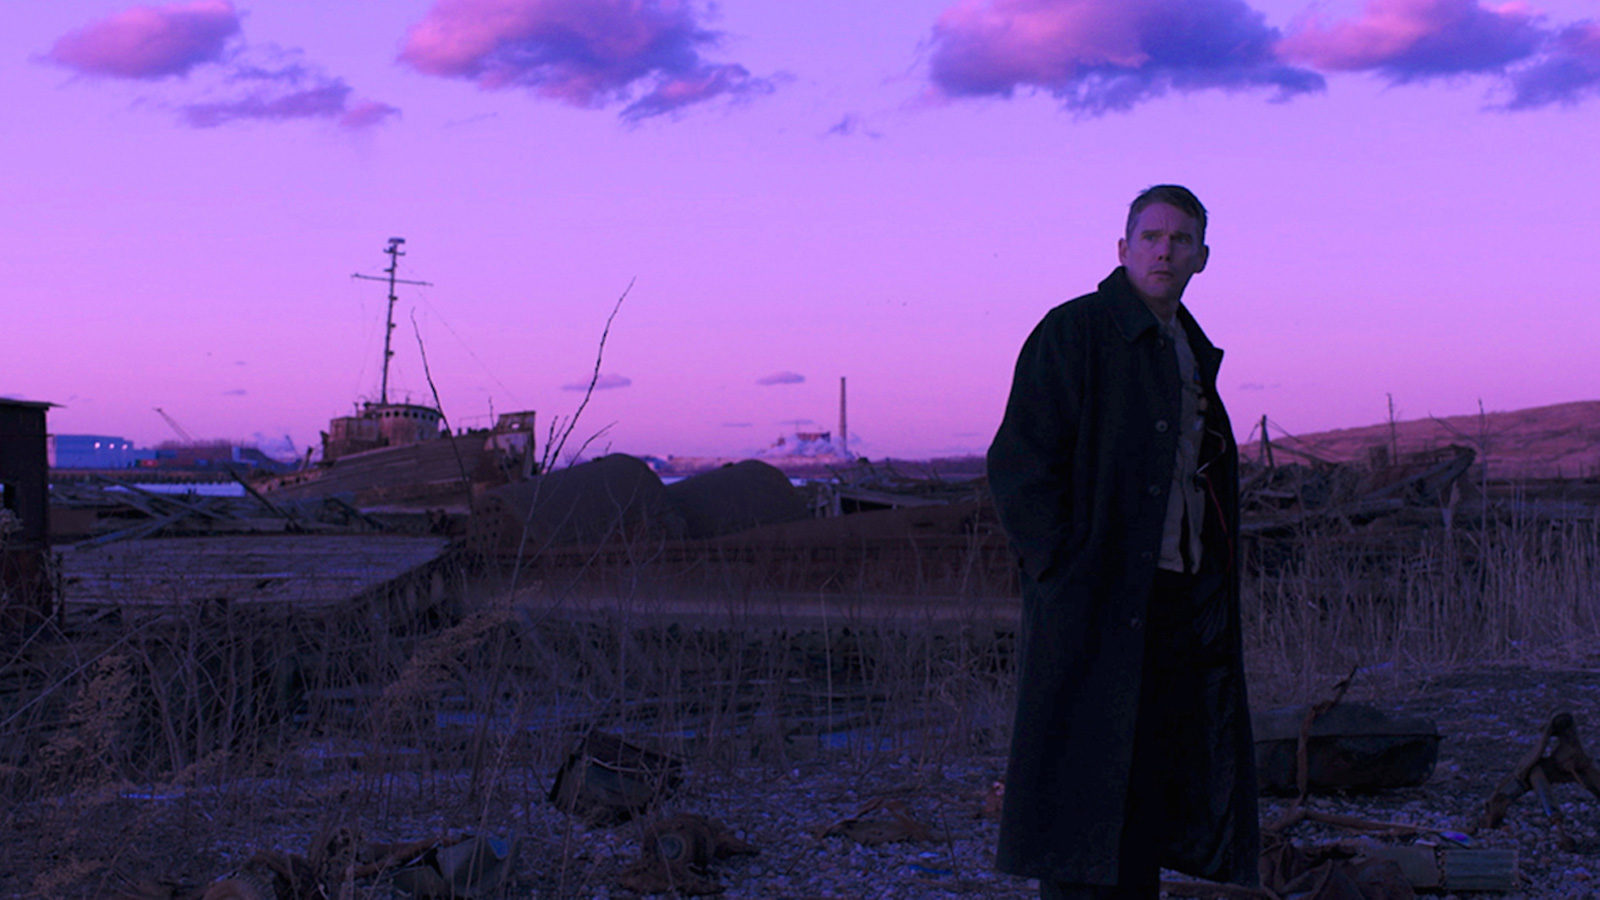 First-Reformed-2-1600x900-c-default.jpg